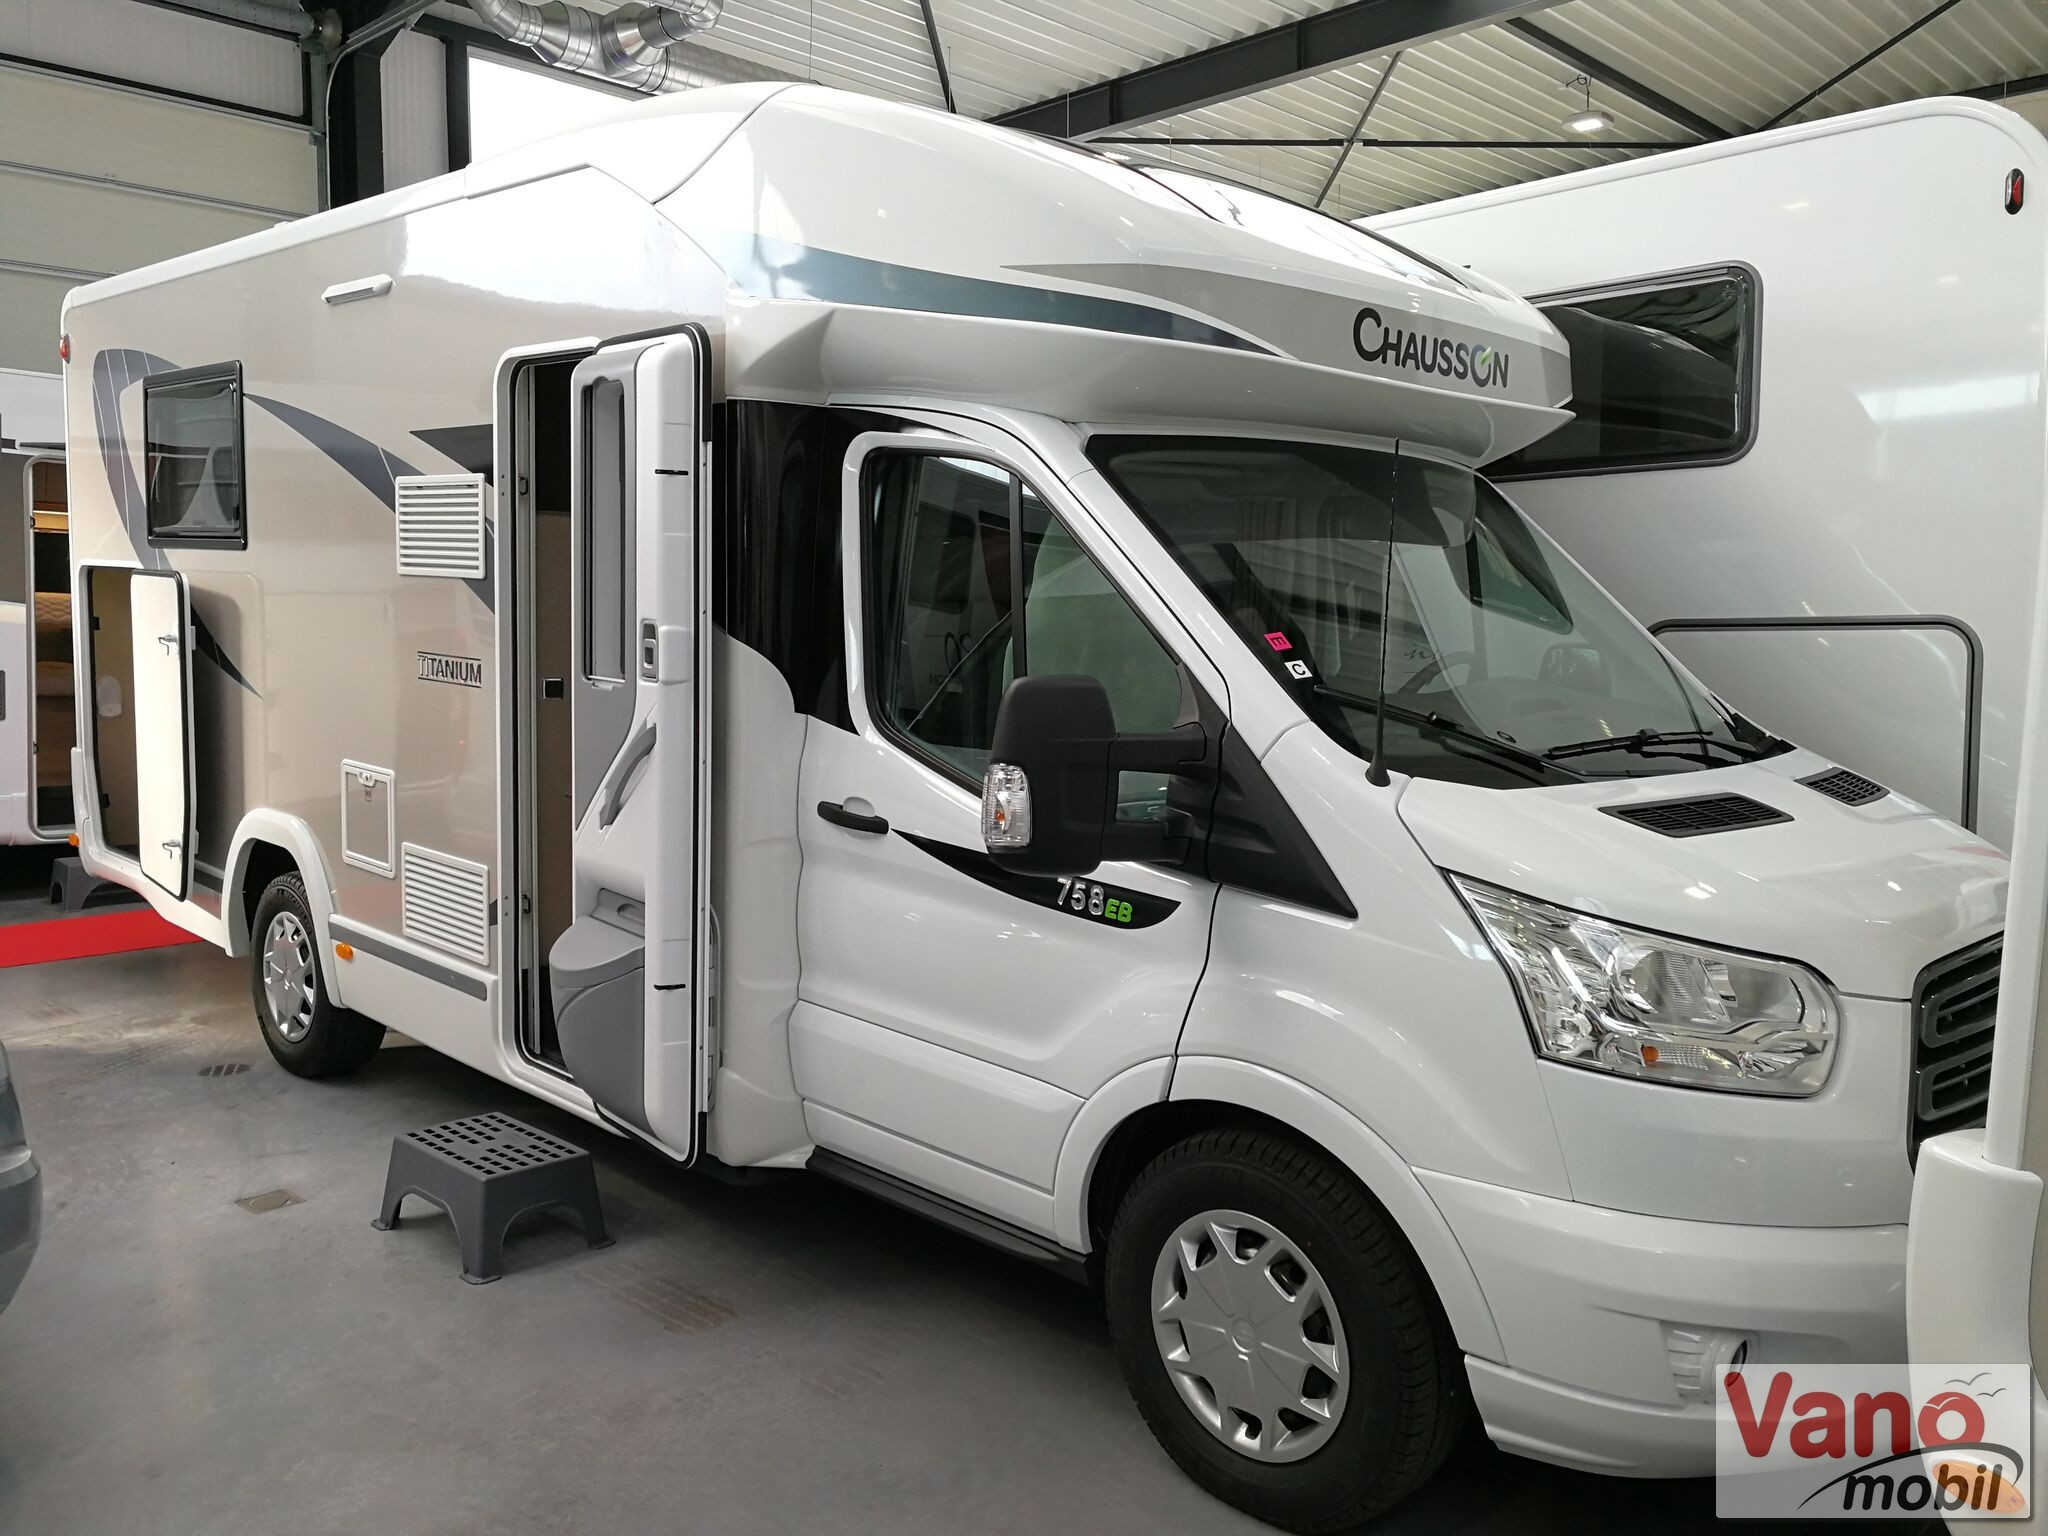 Chausson - Titanium 758 Ford 170 Automatic - 1